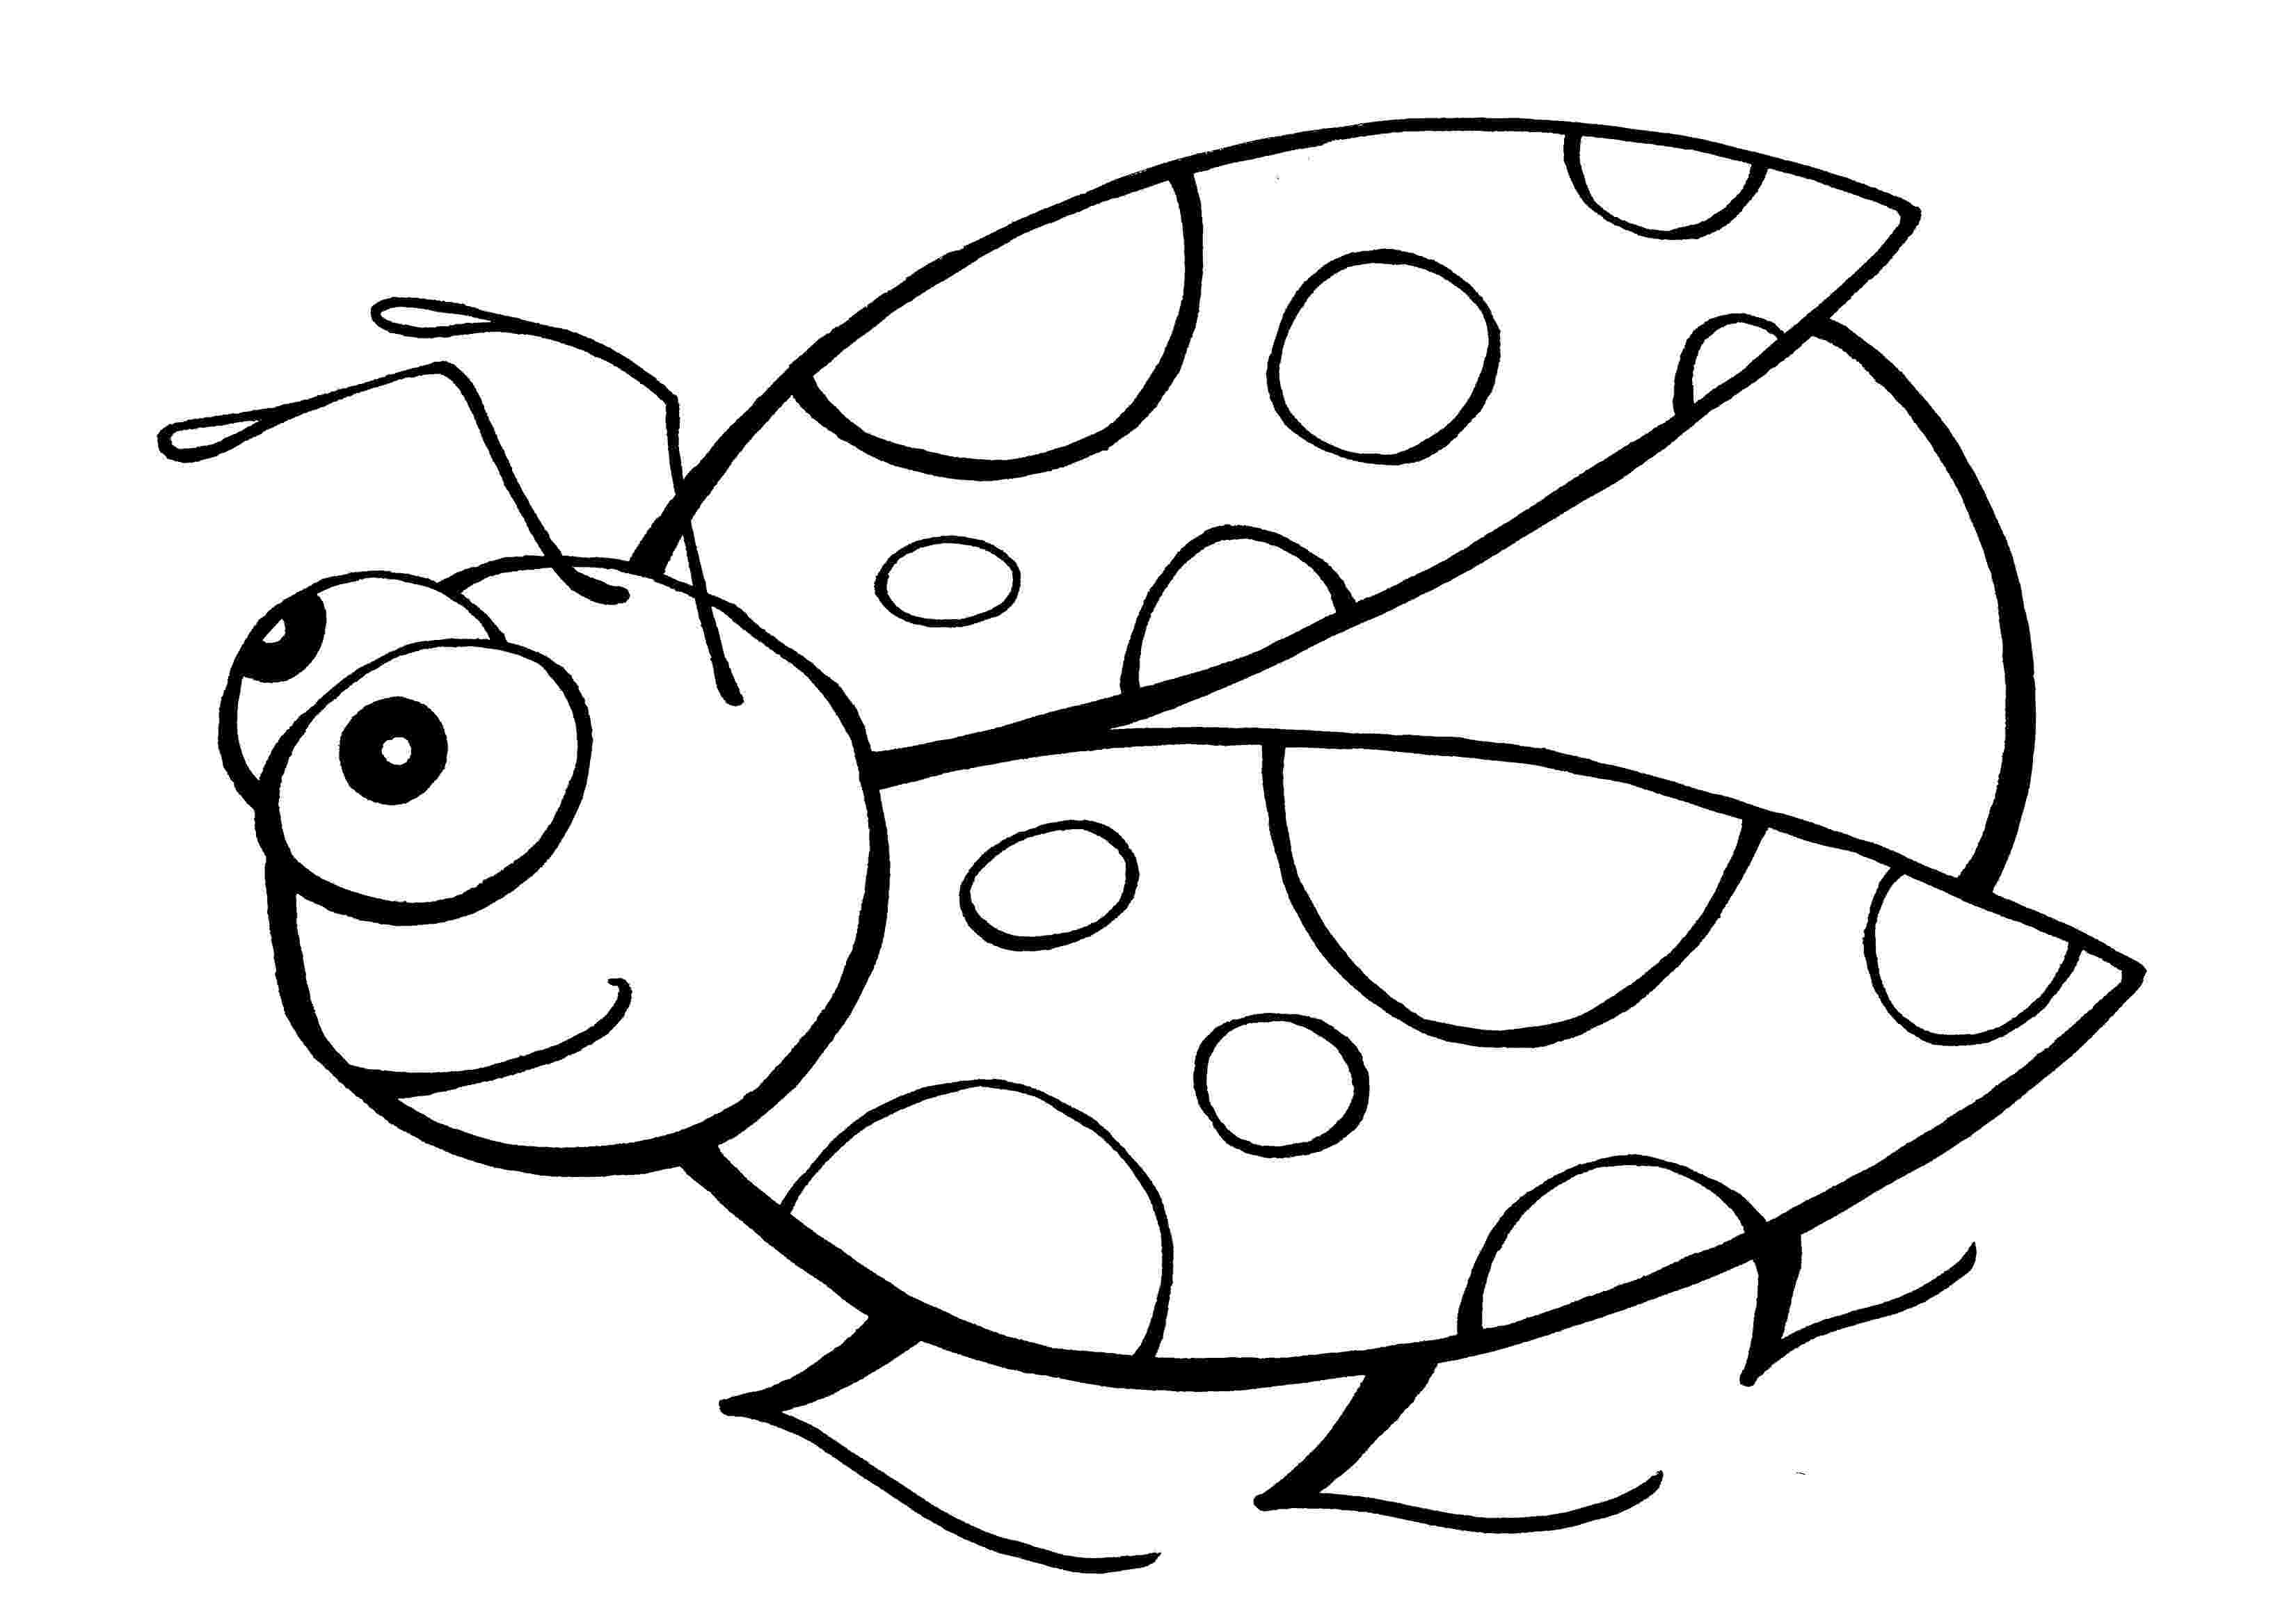 ladybugs coloring pages free printable ladybug coloring pages for kids pages ladybugs coloring